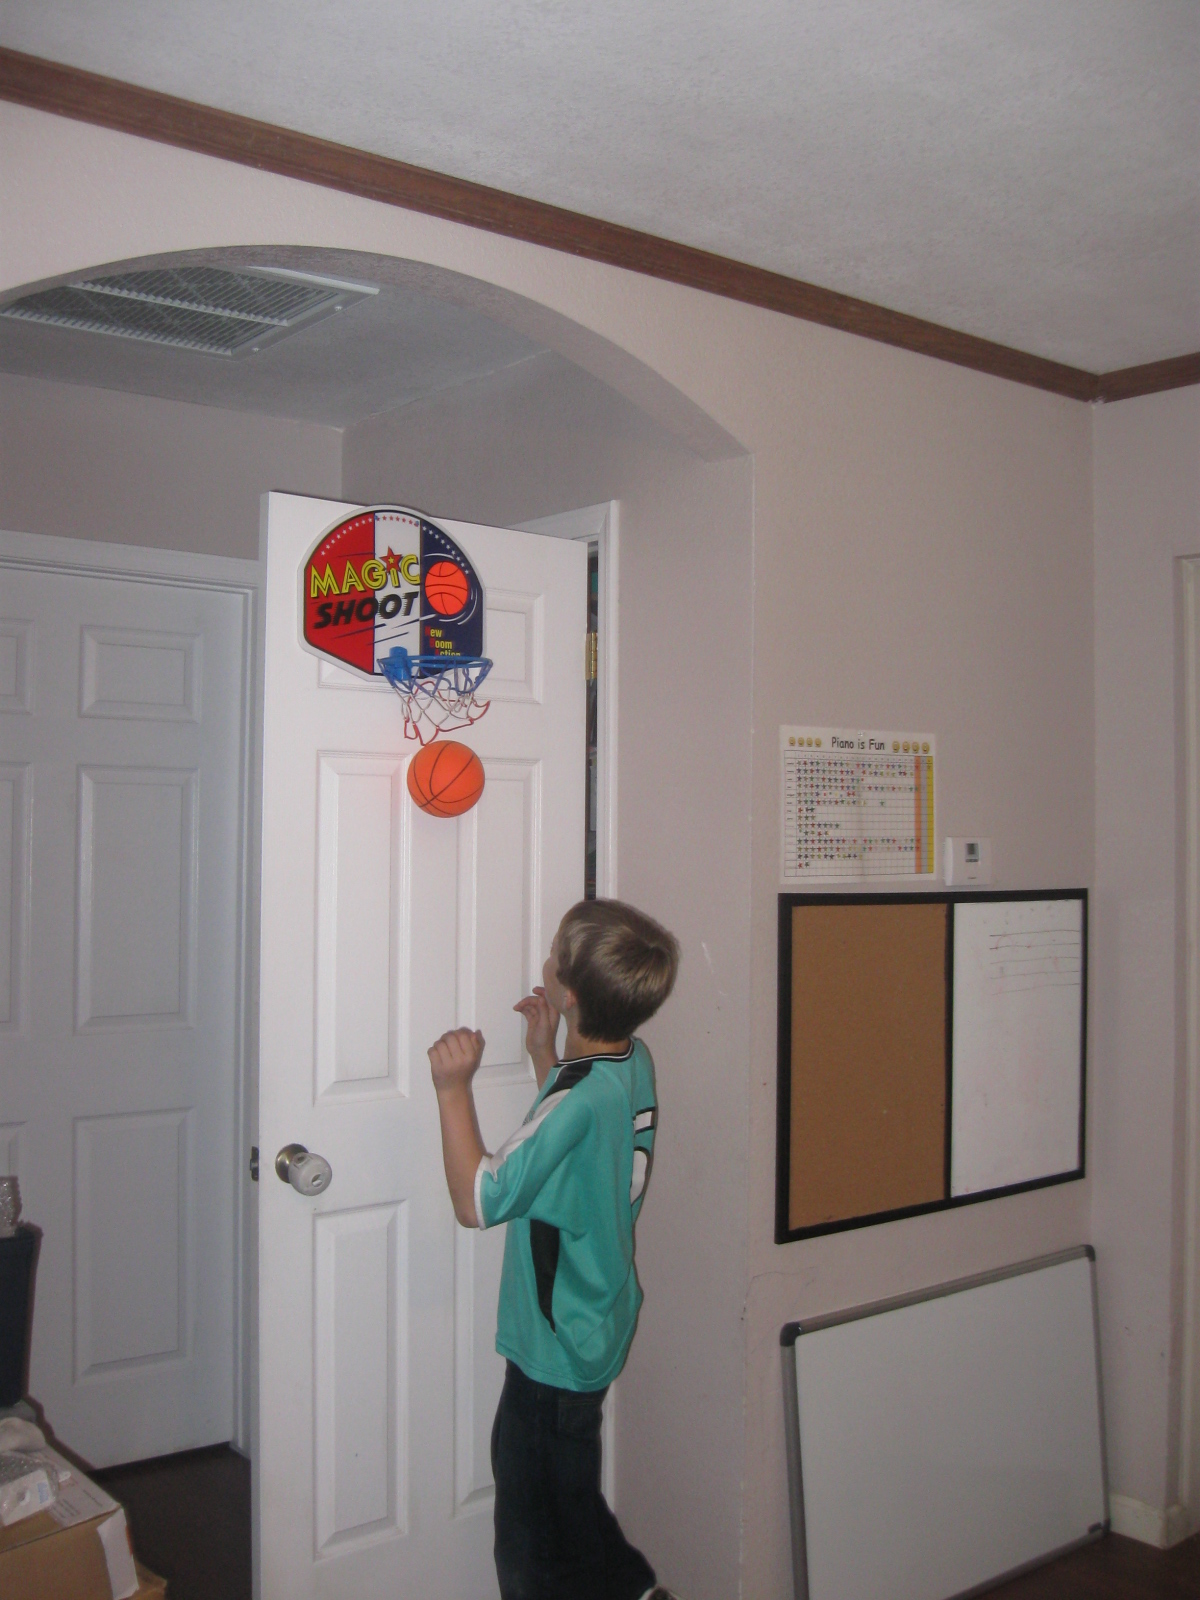 Basketball my way layton music games and resources for Basketball hoop for kids room